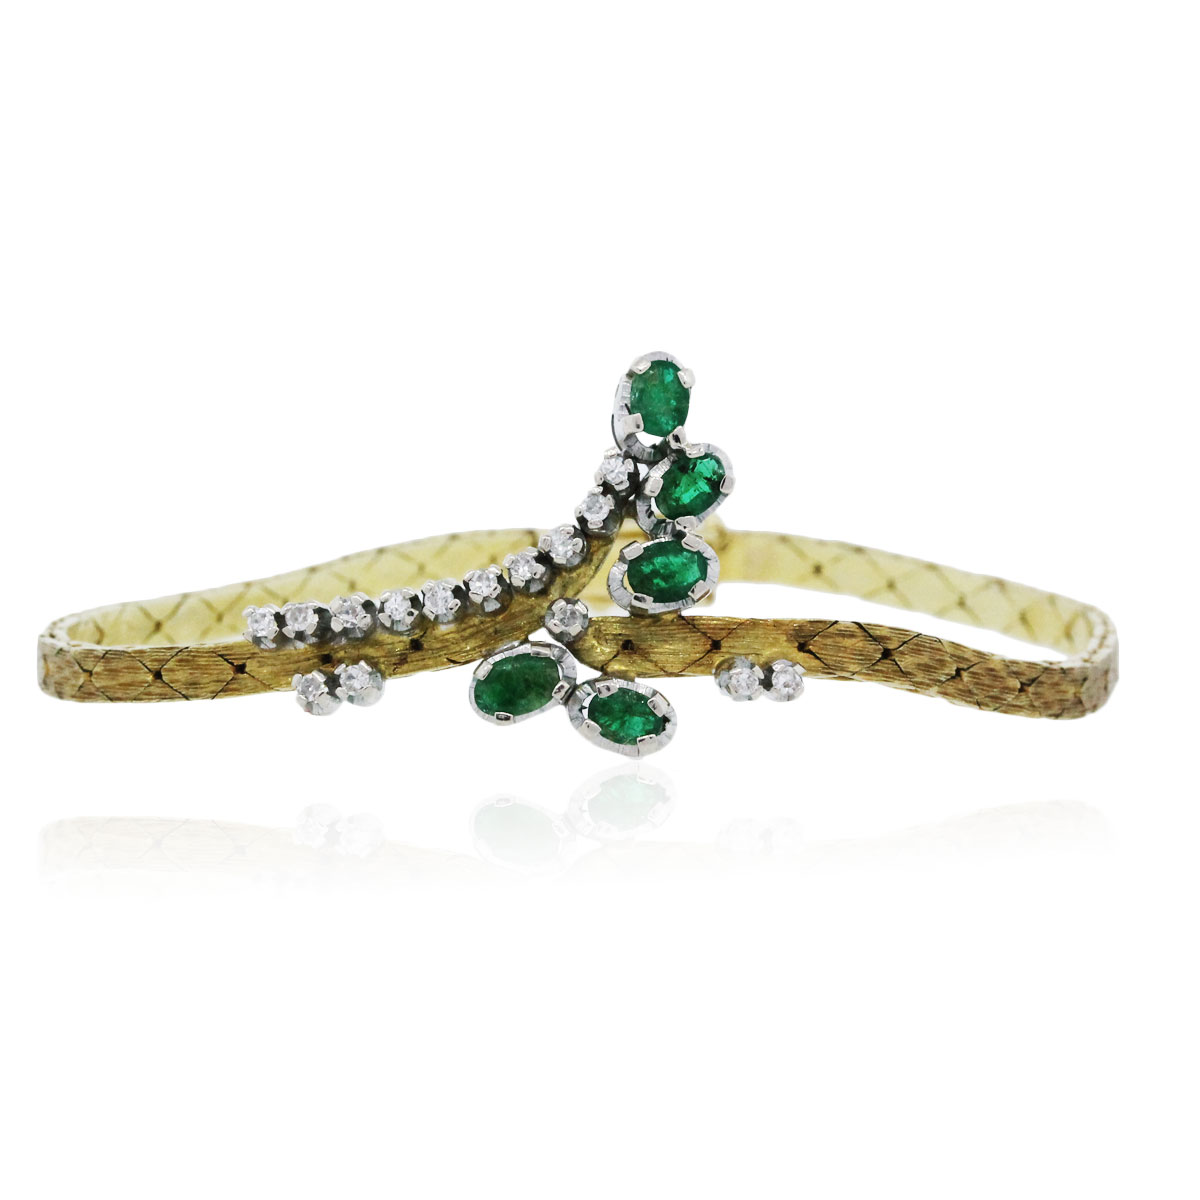 You are viewing this Vintage Yellow Gold Emerald and Diamond Bracelet!